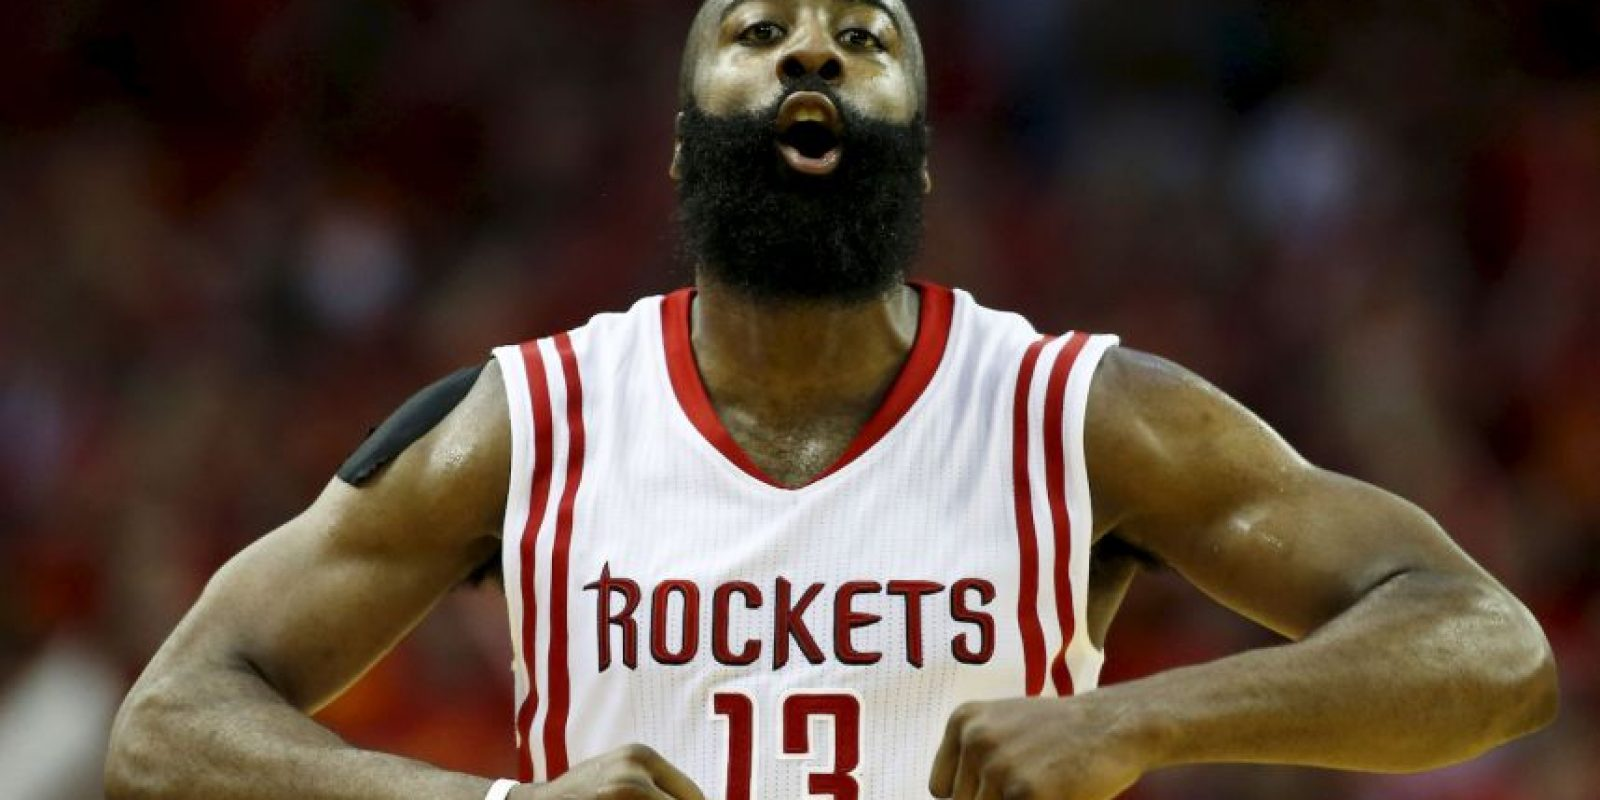 1. James Harden Foto: Getty Images